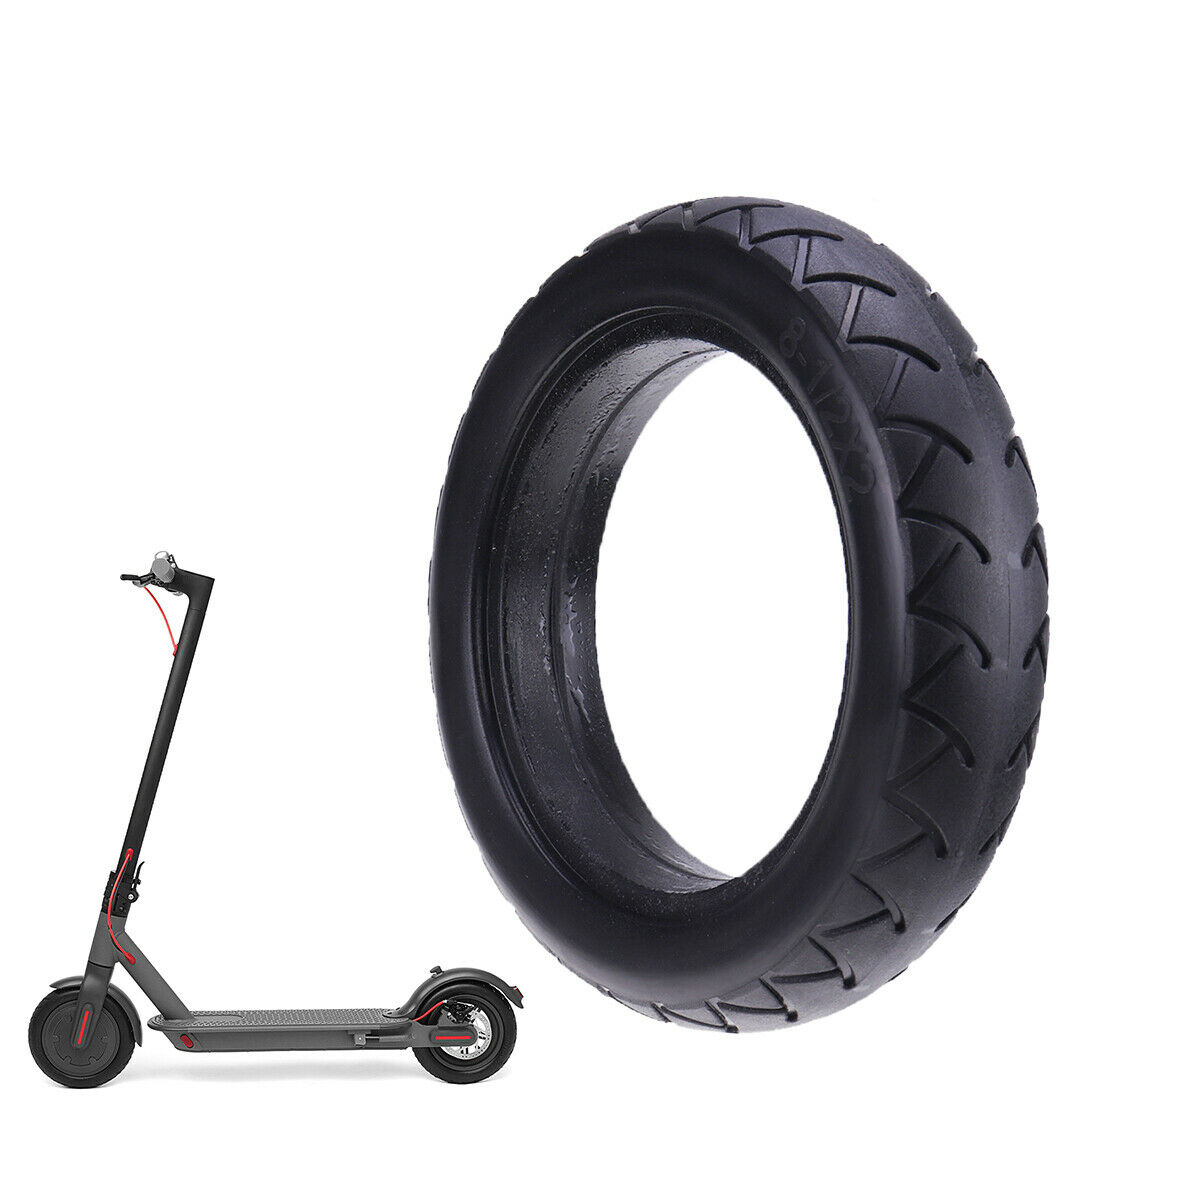 Upgrade 2pcs Scooter Solid Tire For Xiaomi Mijia M365 Skateboard Tyre Wheels 8 1/2X2 Electric Skate Board Avoid Pneumatic Tyres